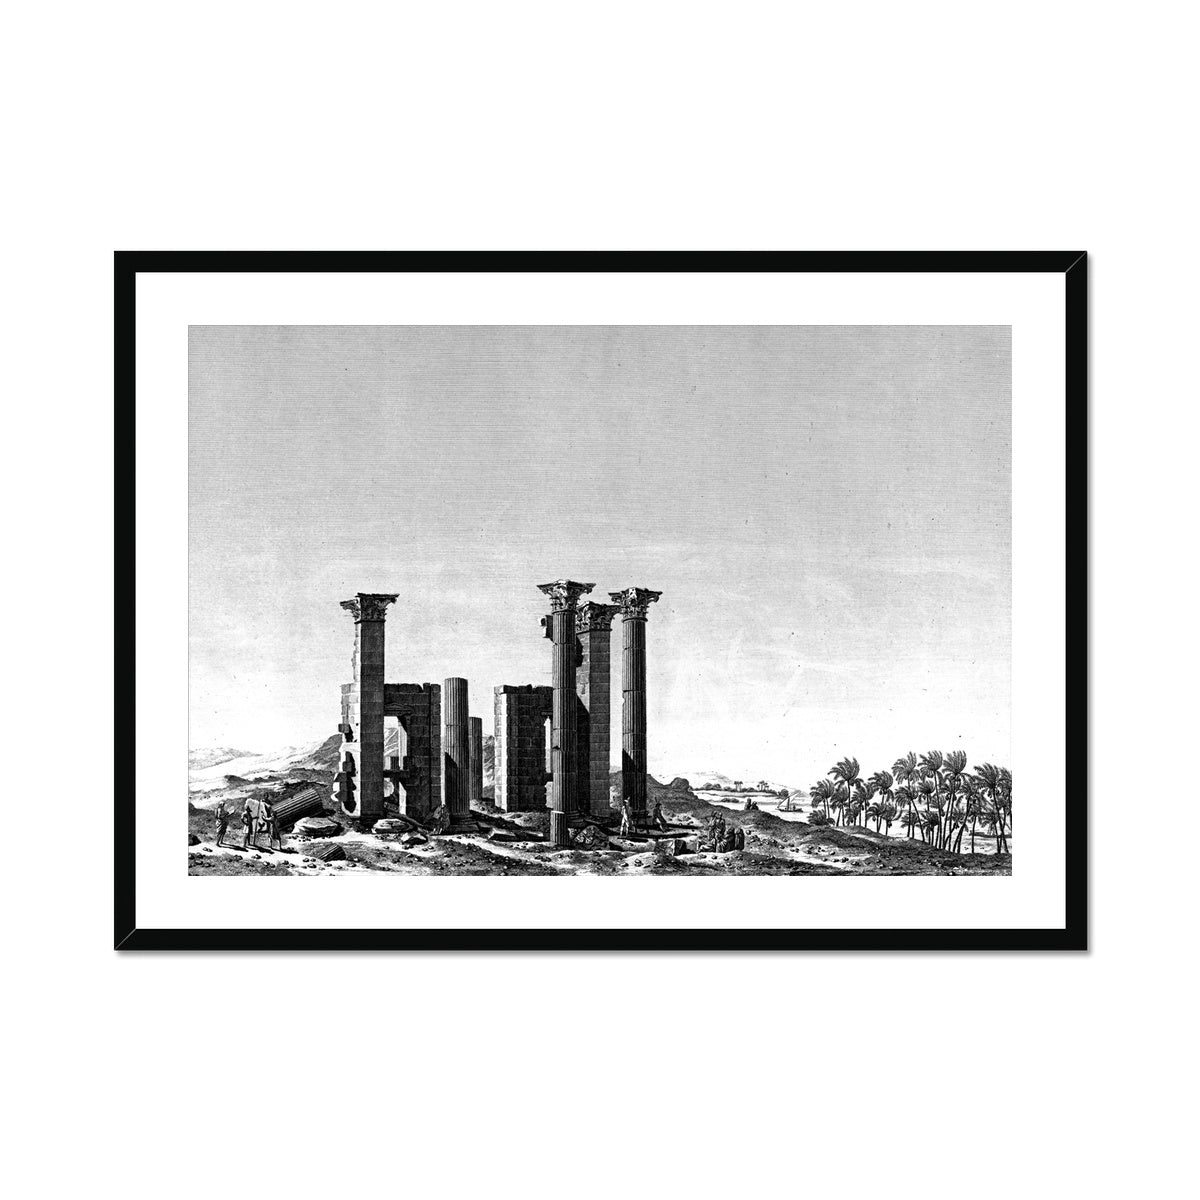 Theater Portico - Antinoöpolis Egypt -  Framed & Mounted Print